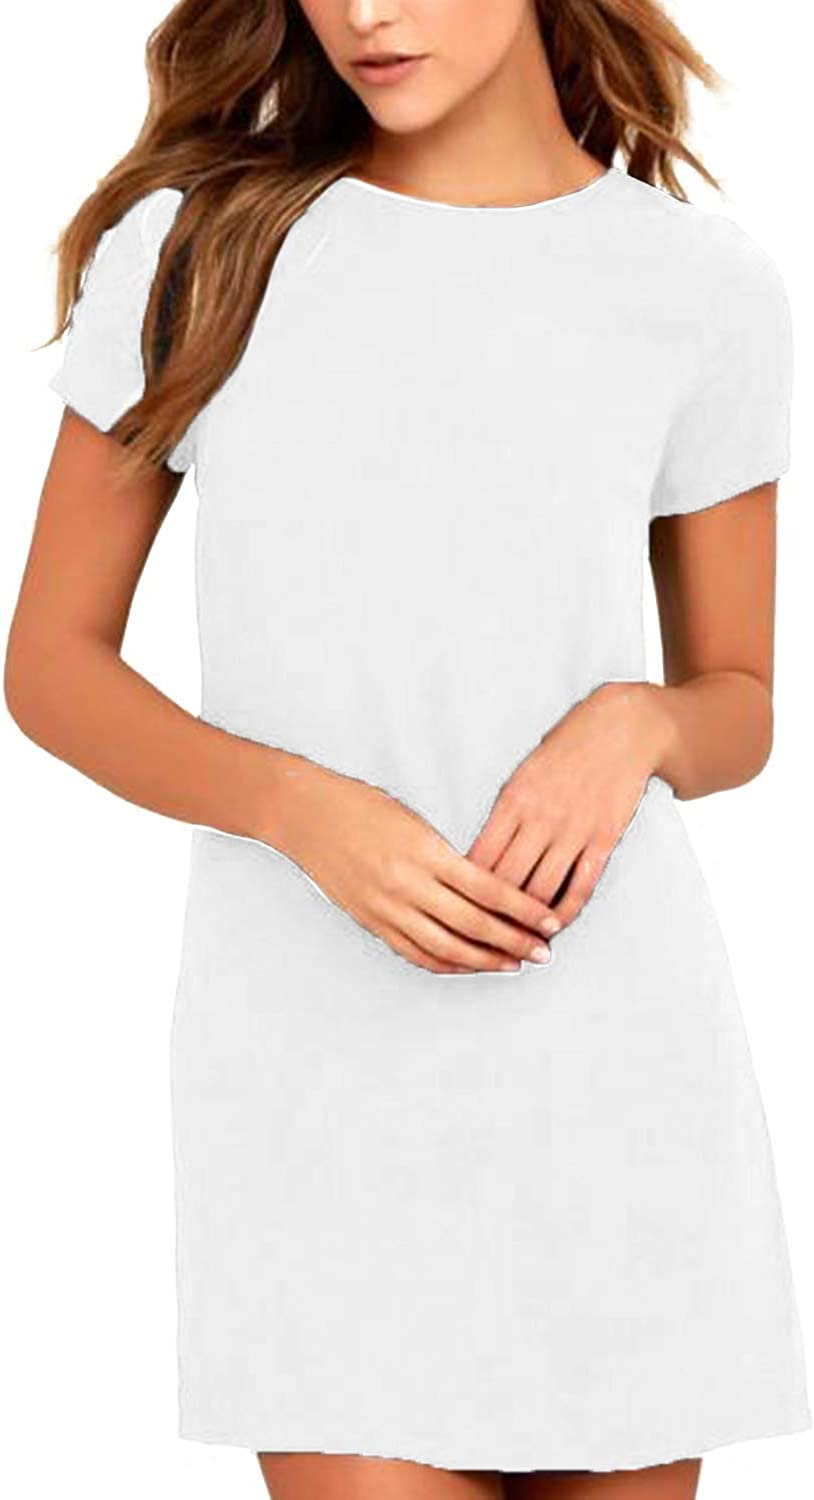 SUNNYME Summer Dresses for Women Casual Loose Solid Mini Dress Beach Swing Tunic Shift Dress